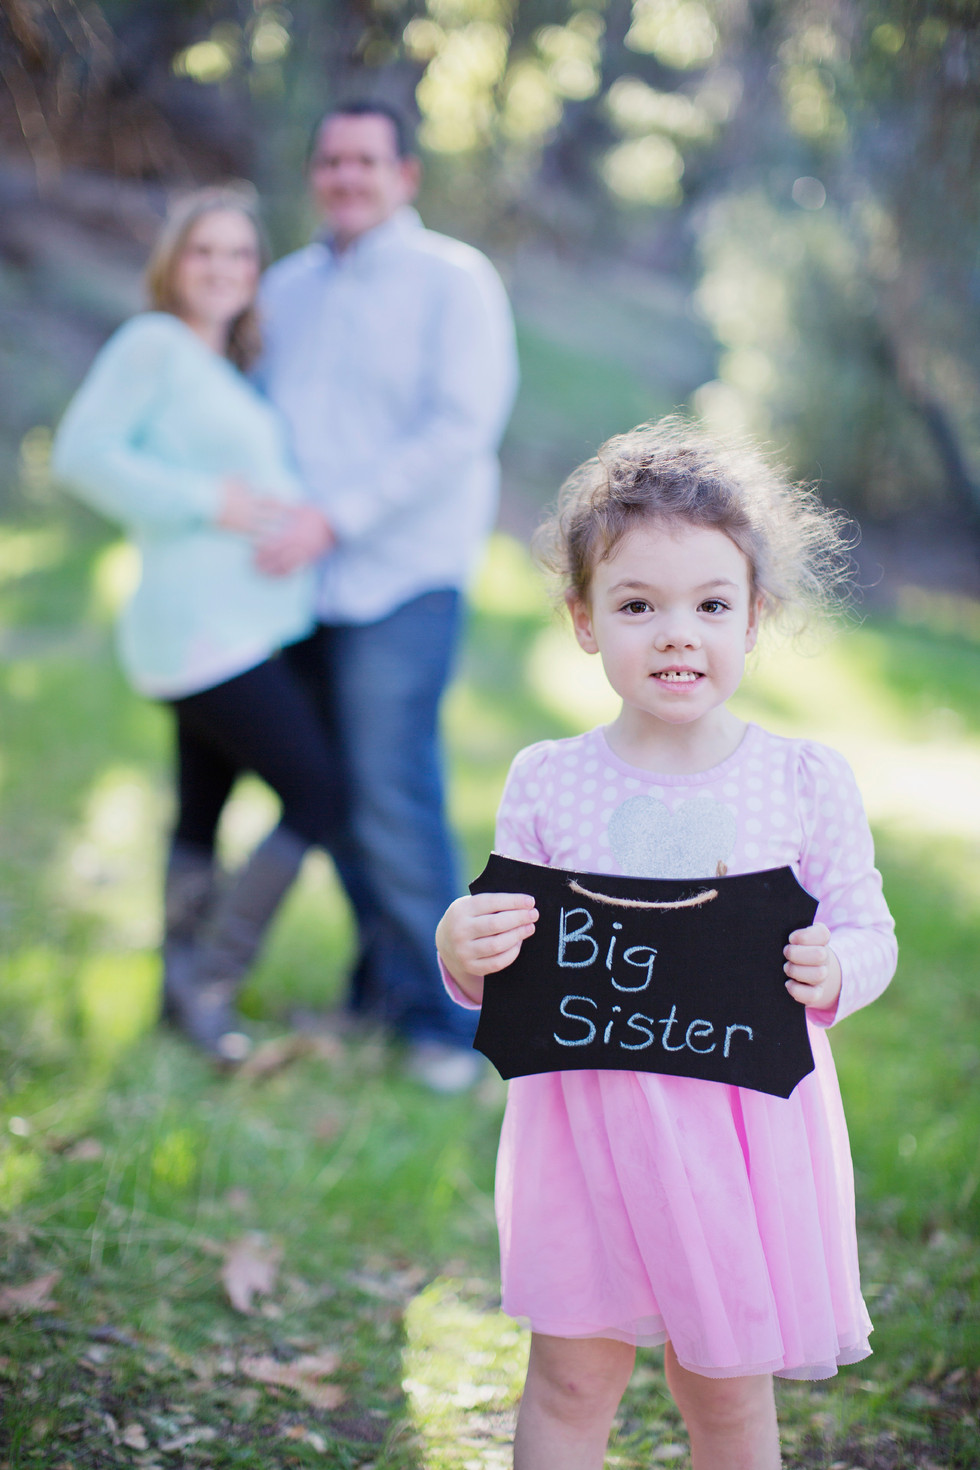 The Best Big Sister